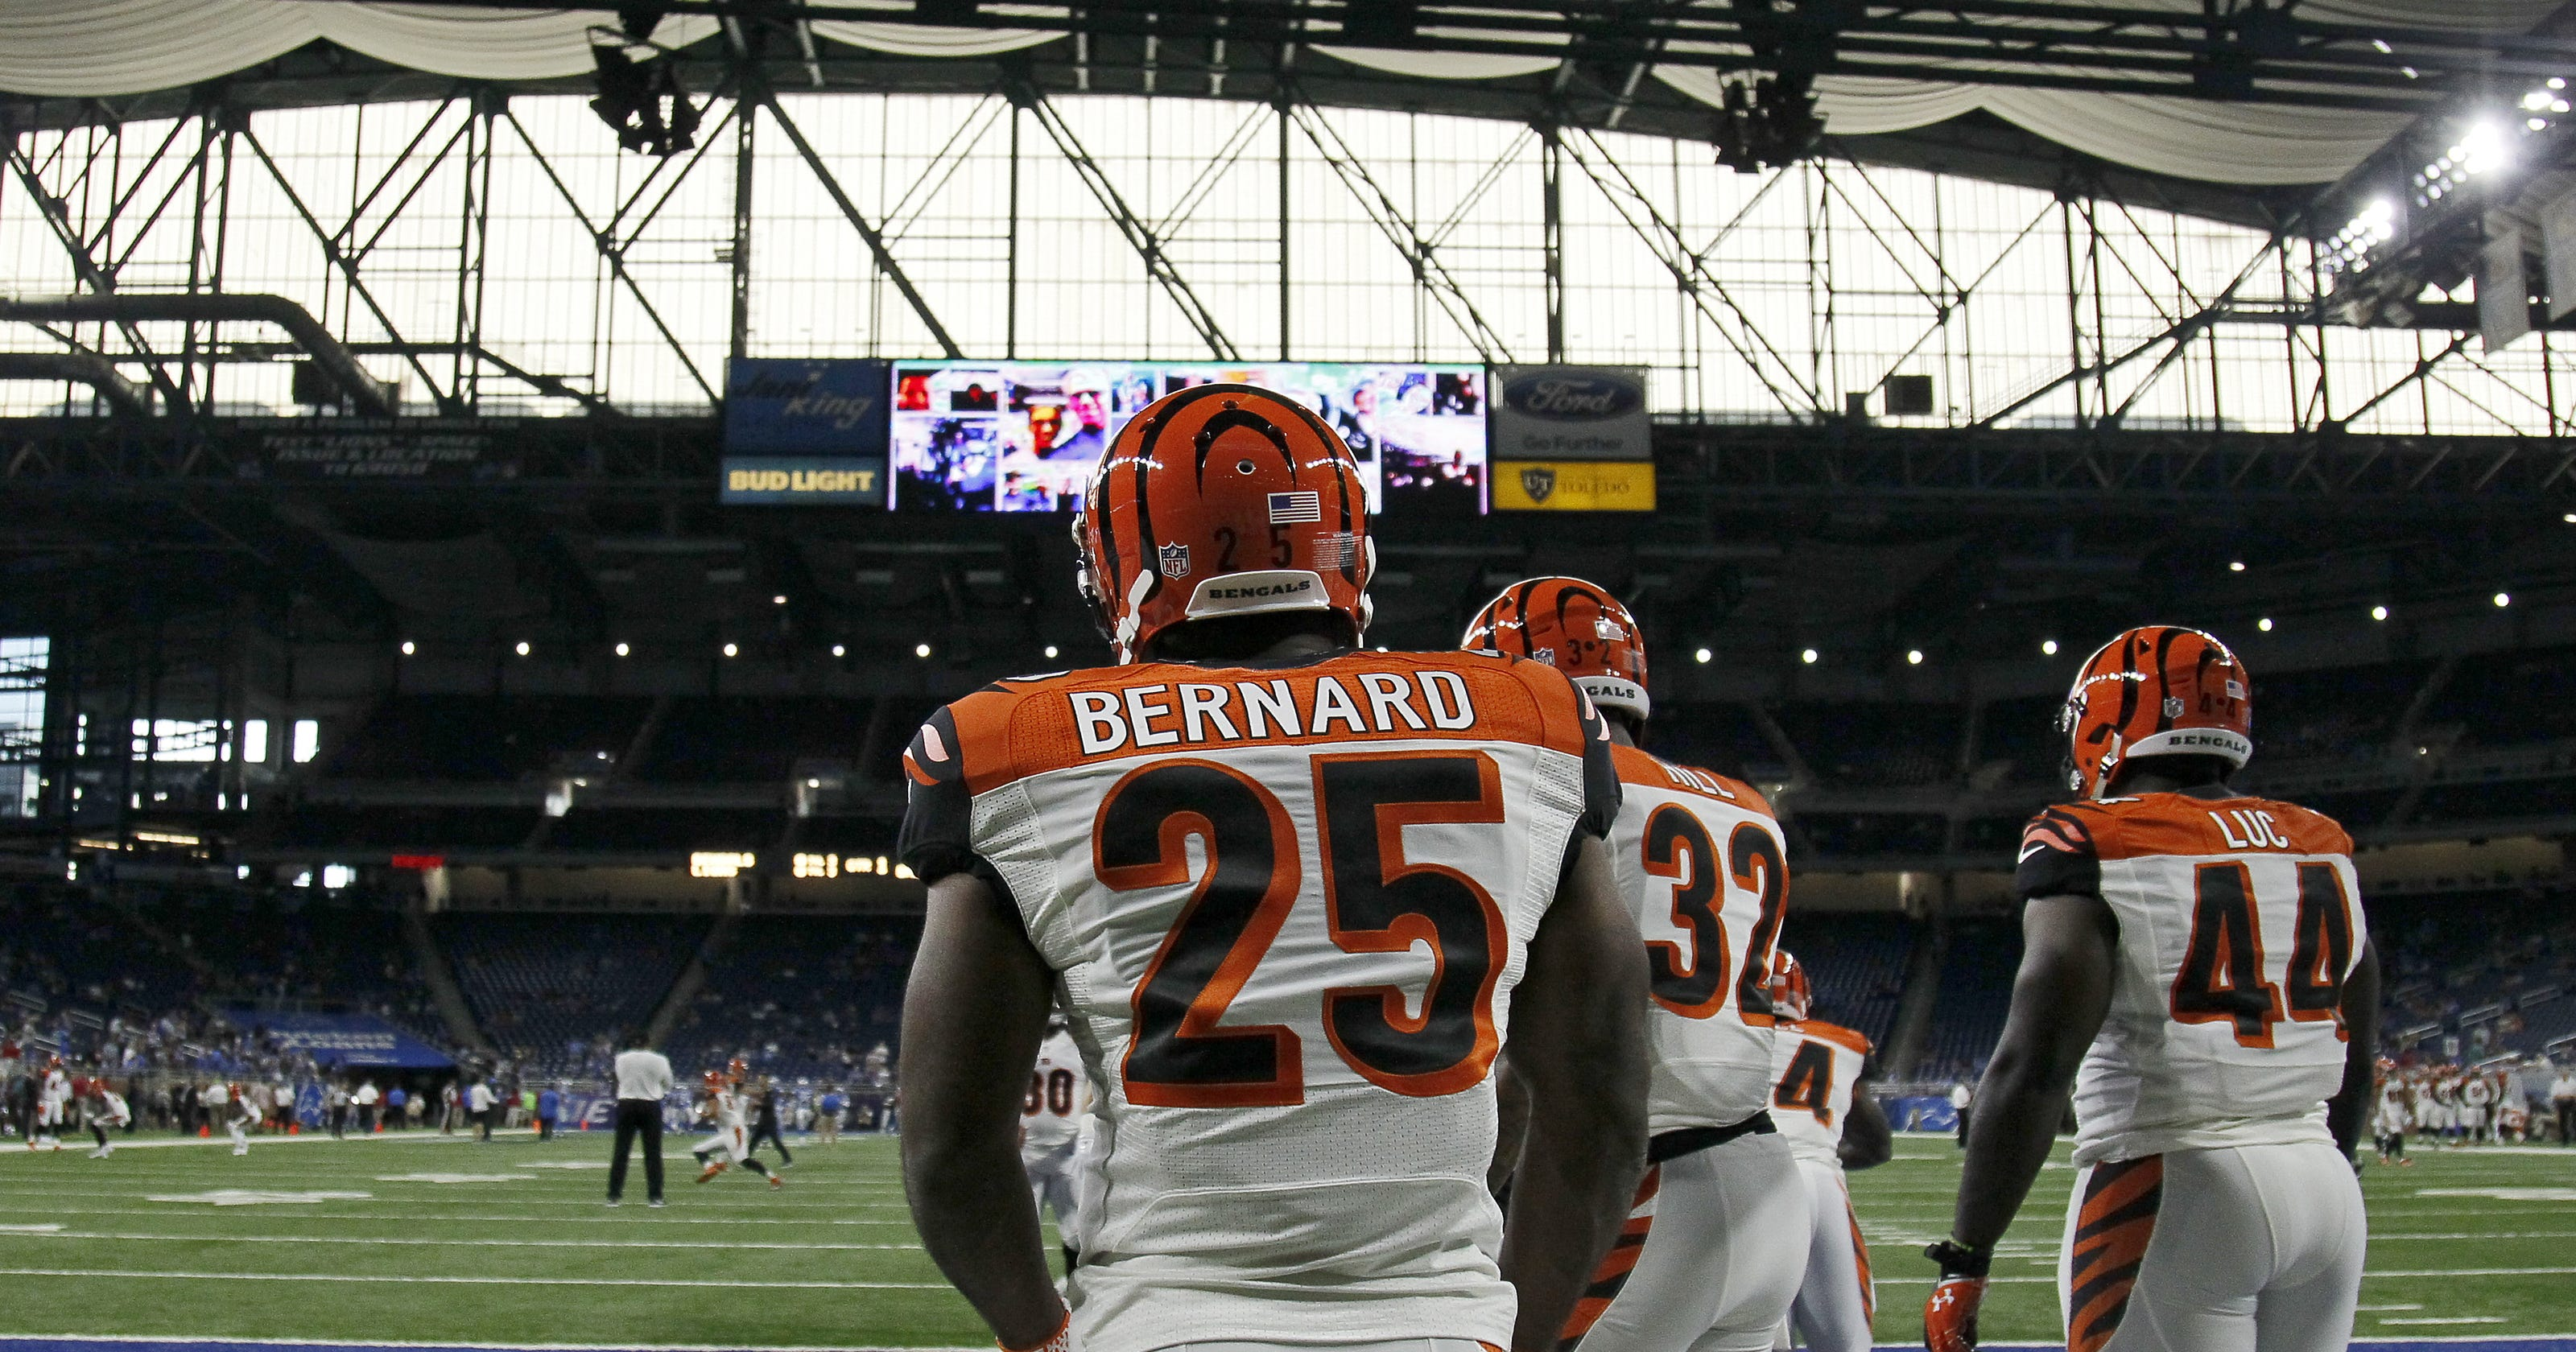 2c2a85986 Bengals Walkthru  Thoughts on Bengals prop bets